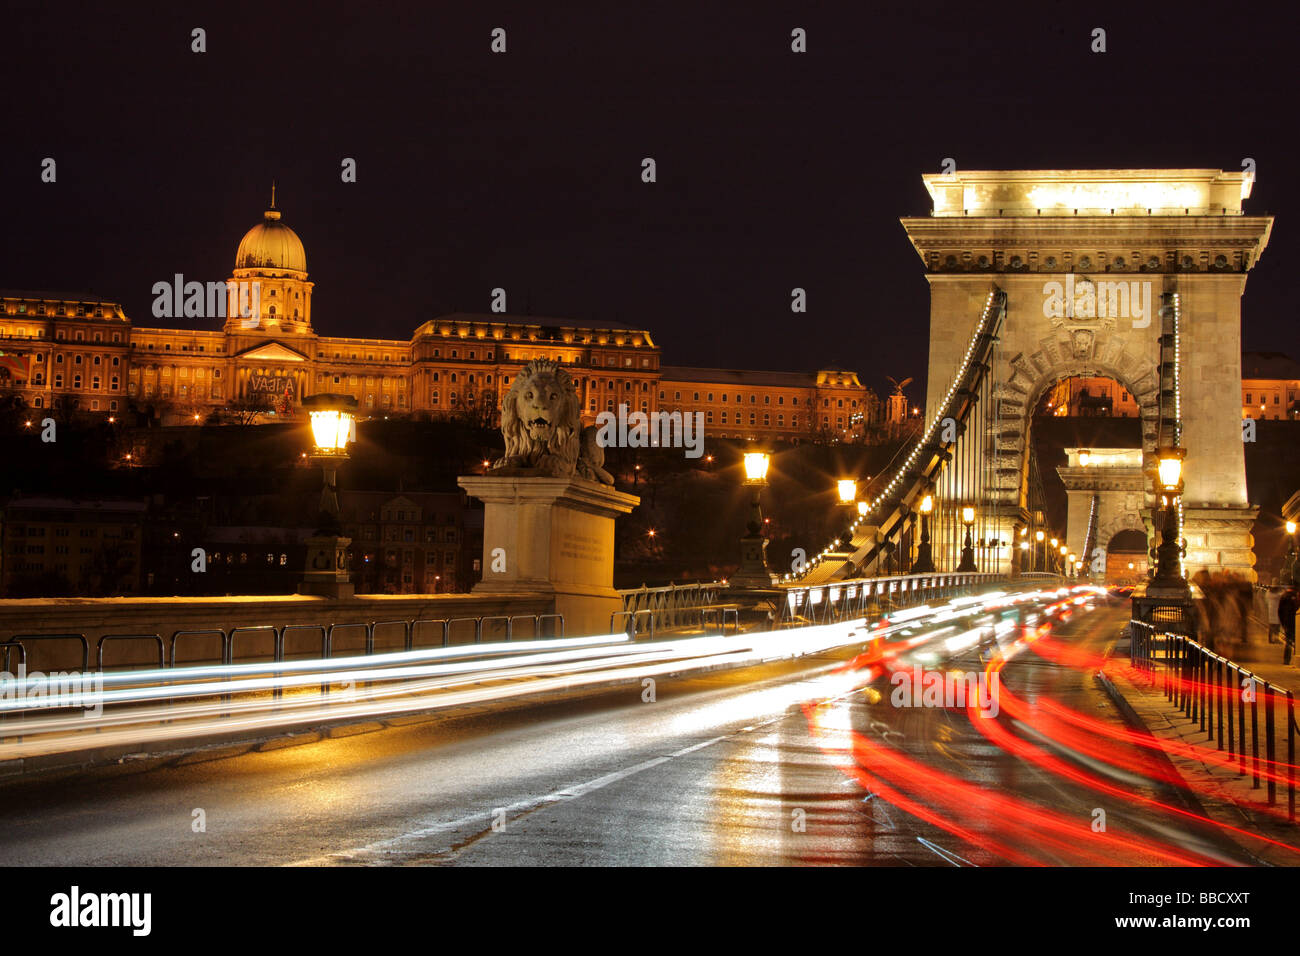 Traffic at the Chain Bridge and the Royal palace of Buda in Budapest, Hungary by night - Stock Image